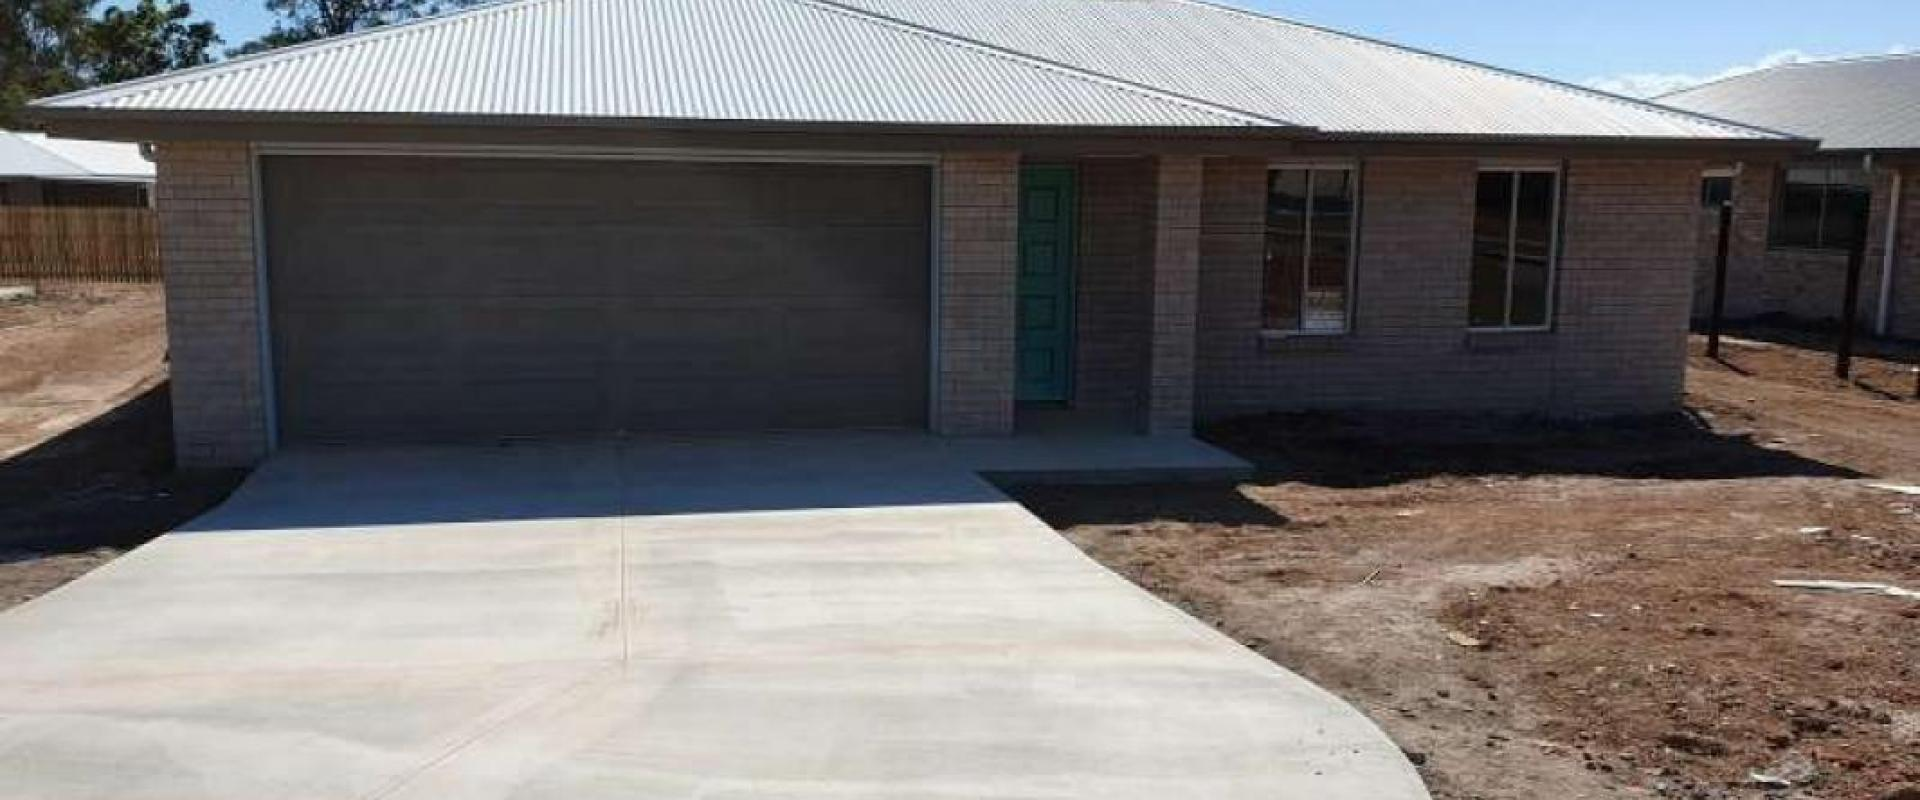 BRAND NEW AND READY TO MOVE INTO VERY SOON, LAND SIZE 742 SQM, WIDE SIDE ACCESS TO THE REAR YARD, SEPARATE LIVING ROOM, WALK IN ROBE, ENSUITE SHOWER.